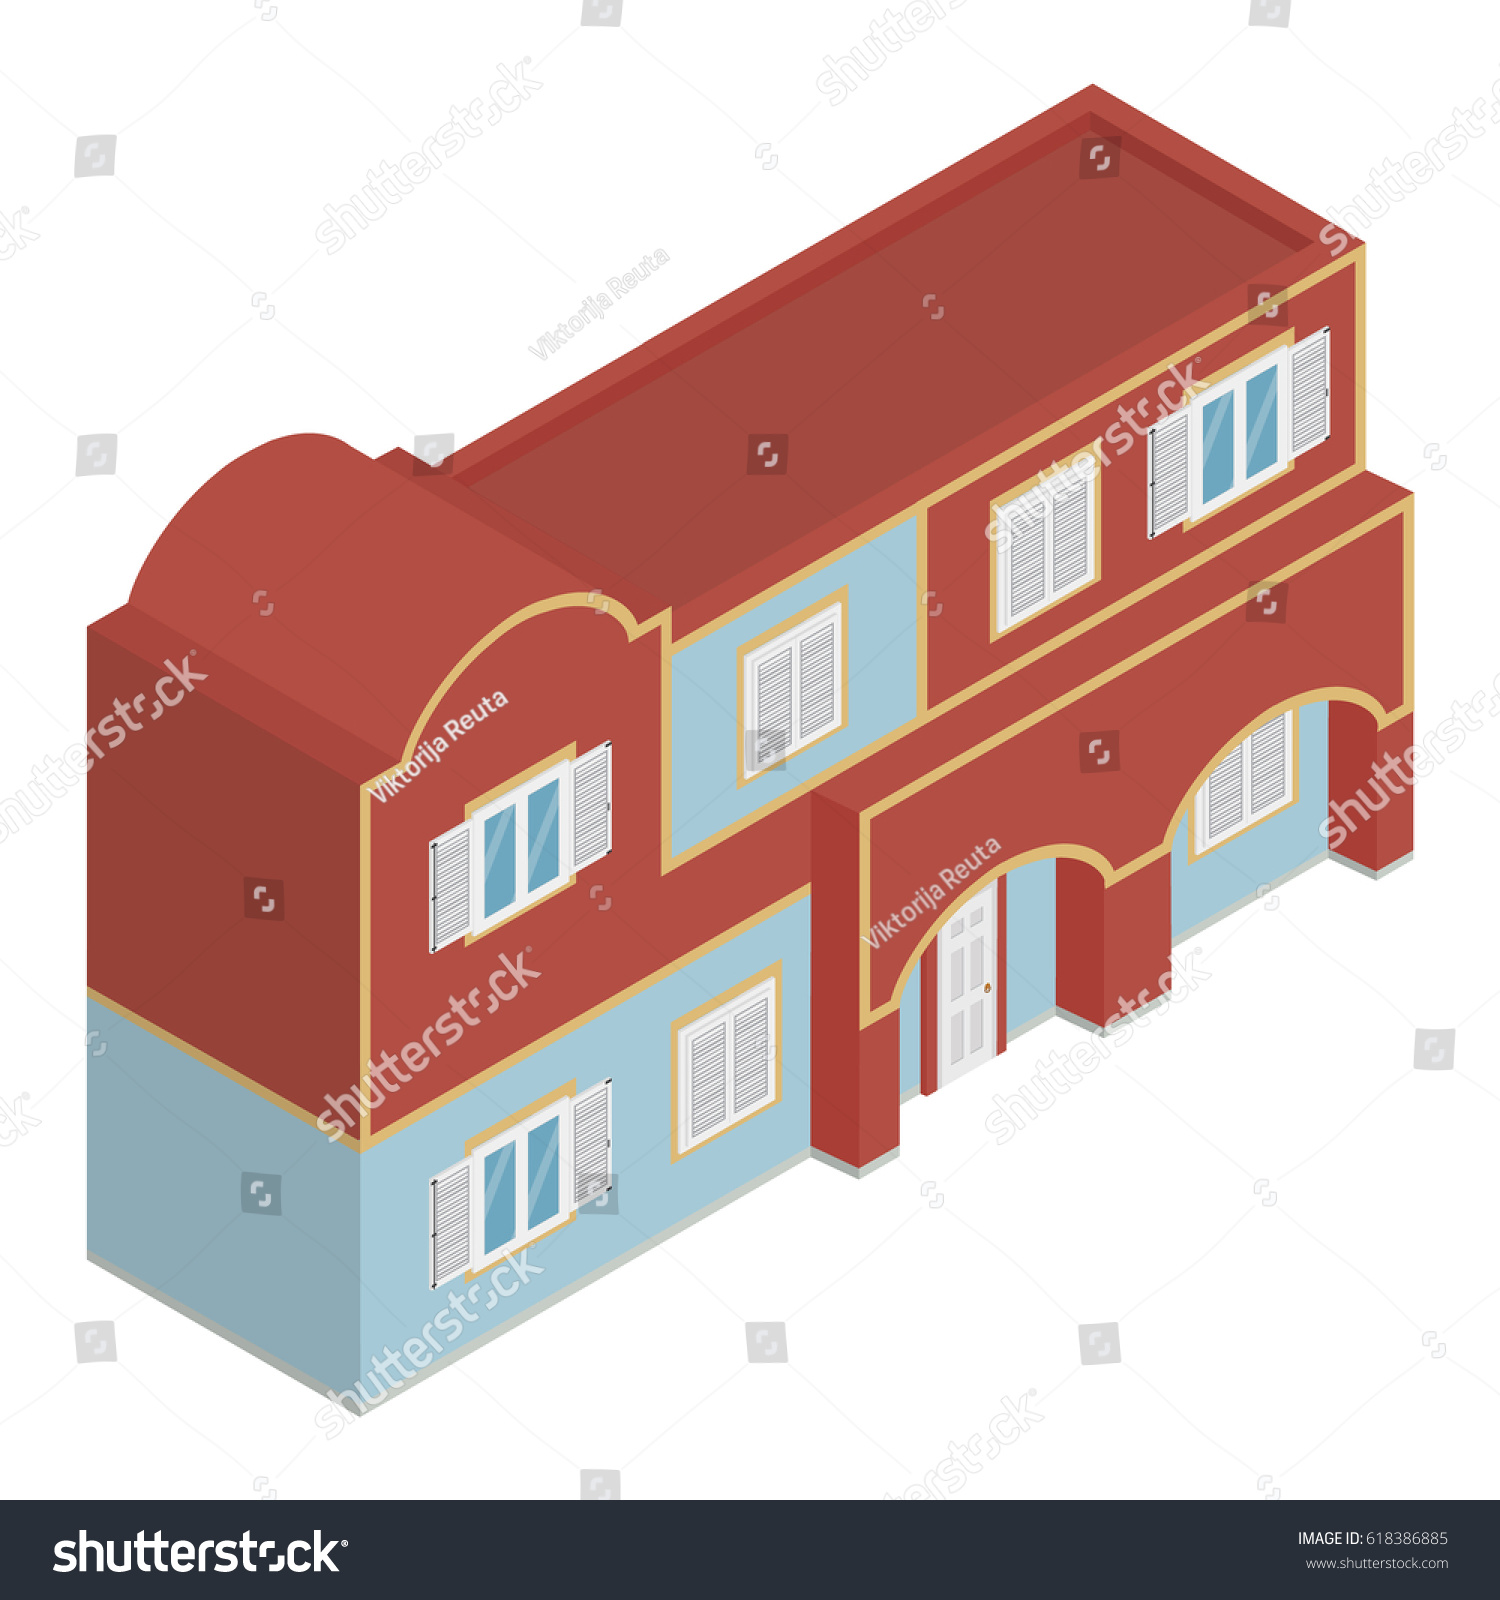 vector illustration isometric perspective 3d vintage stock